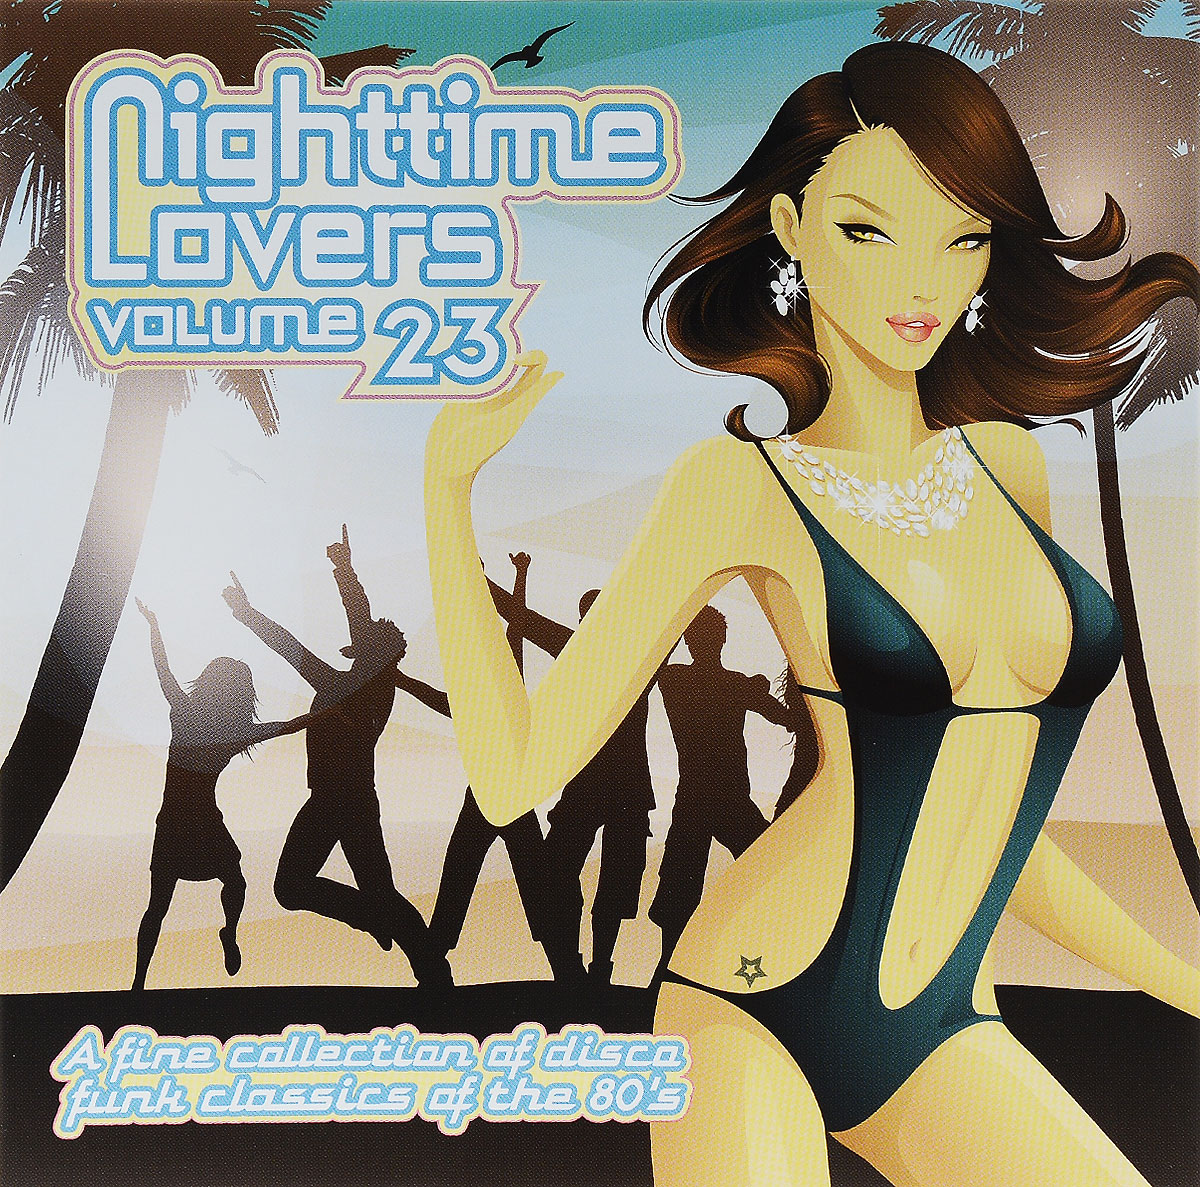 Nighttime Lovers. Volume 23